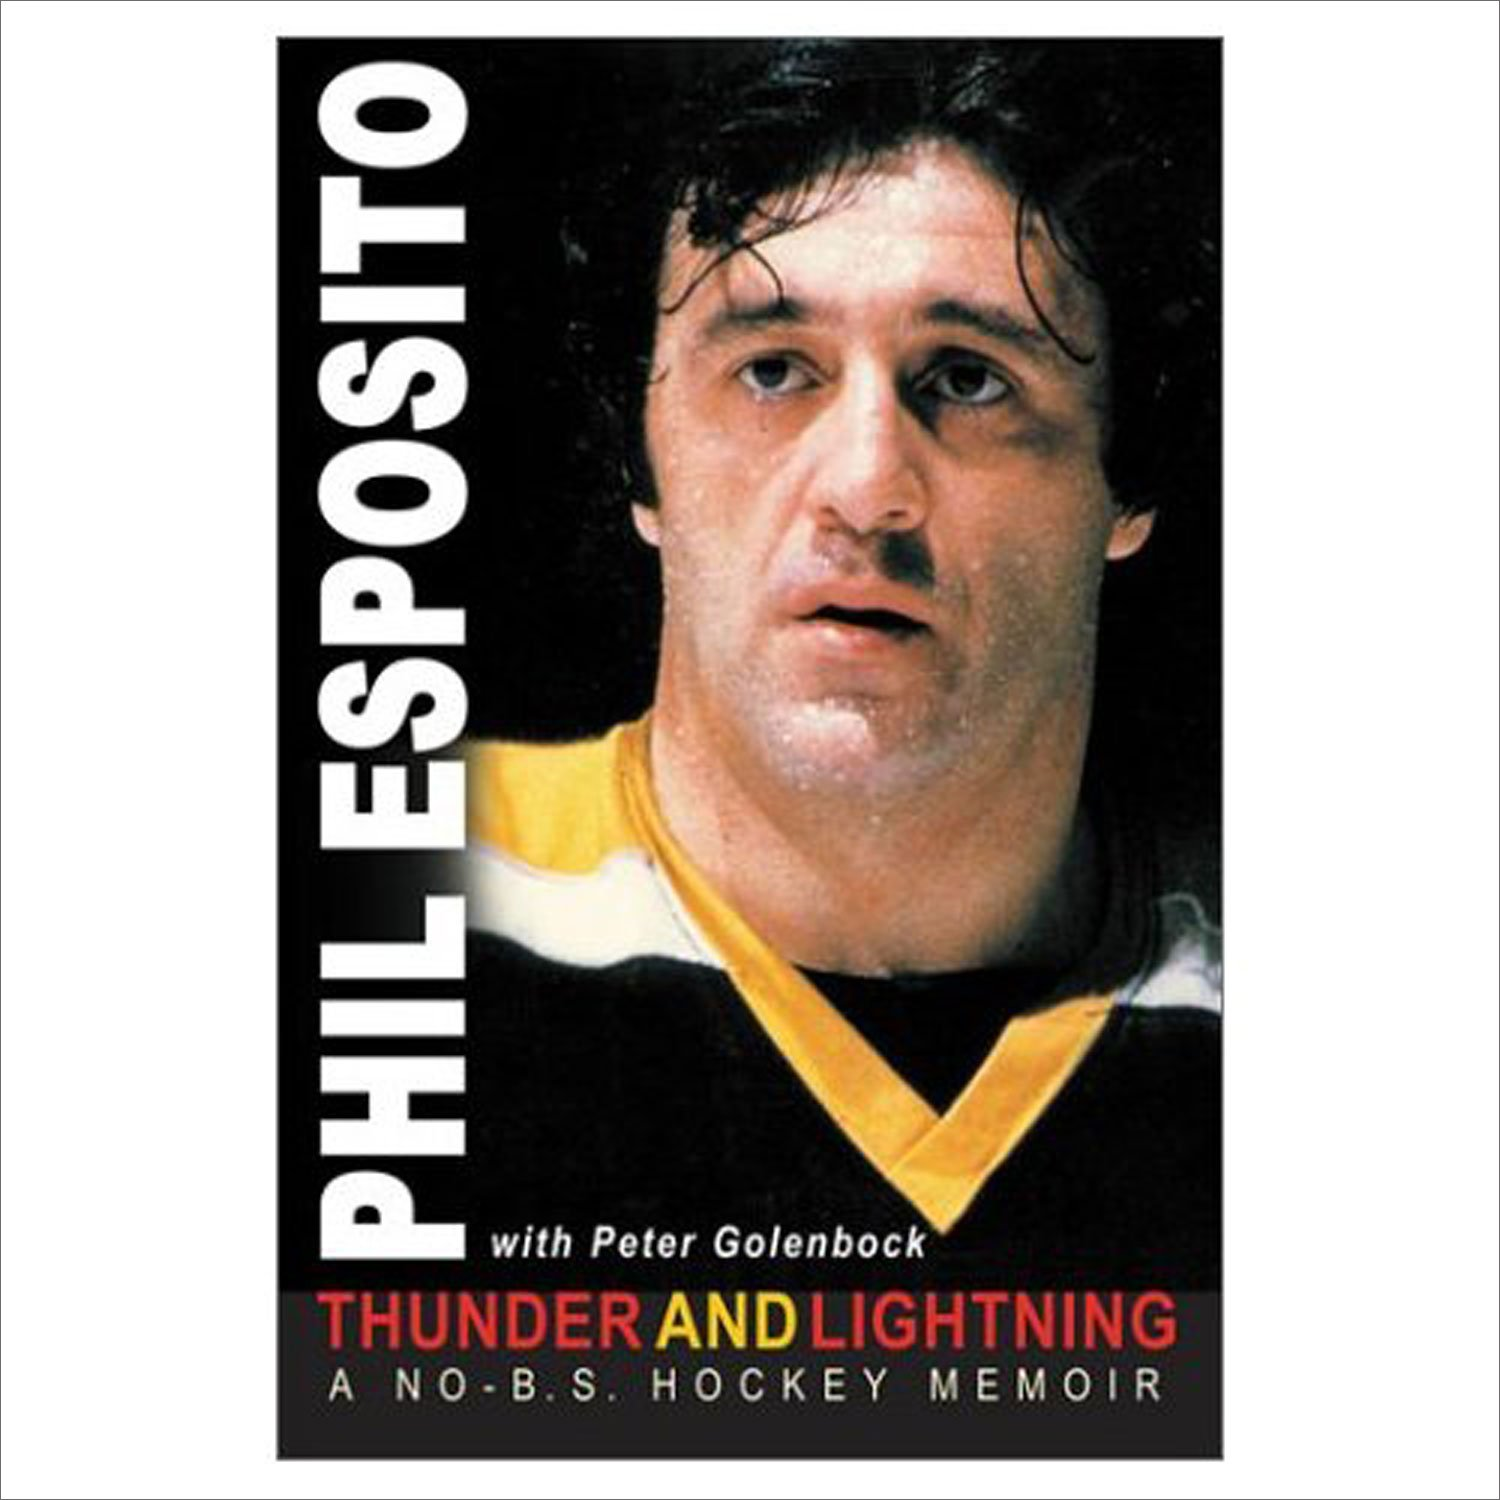 Thunder and Lightning: A No-B.S. Hockey Memoir